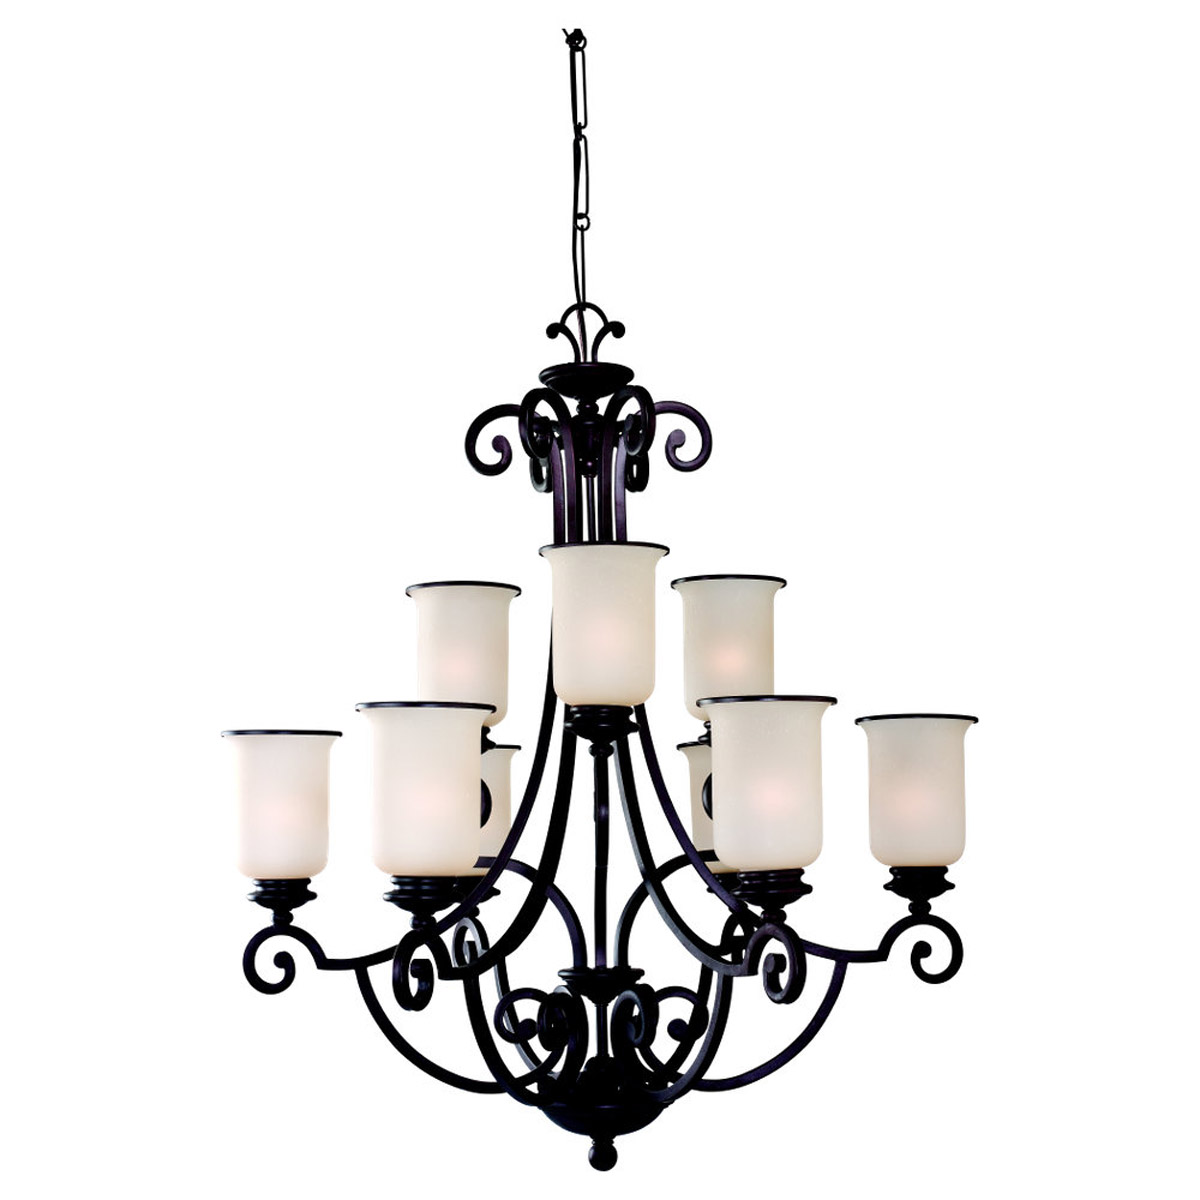 Sea Gull Lighting Acadia 9 Light Chandelier in Misted Bronze 31147BLE-814